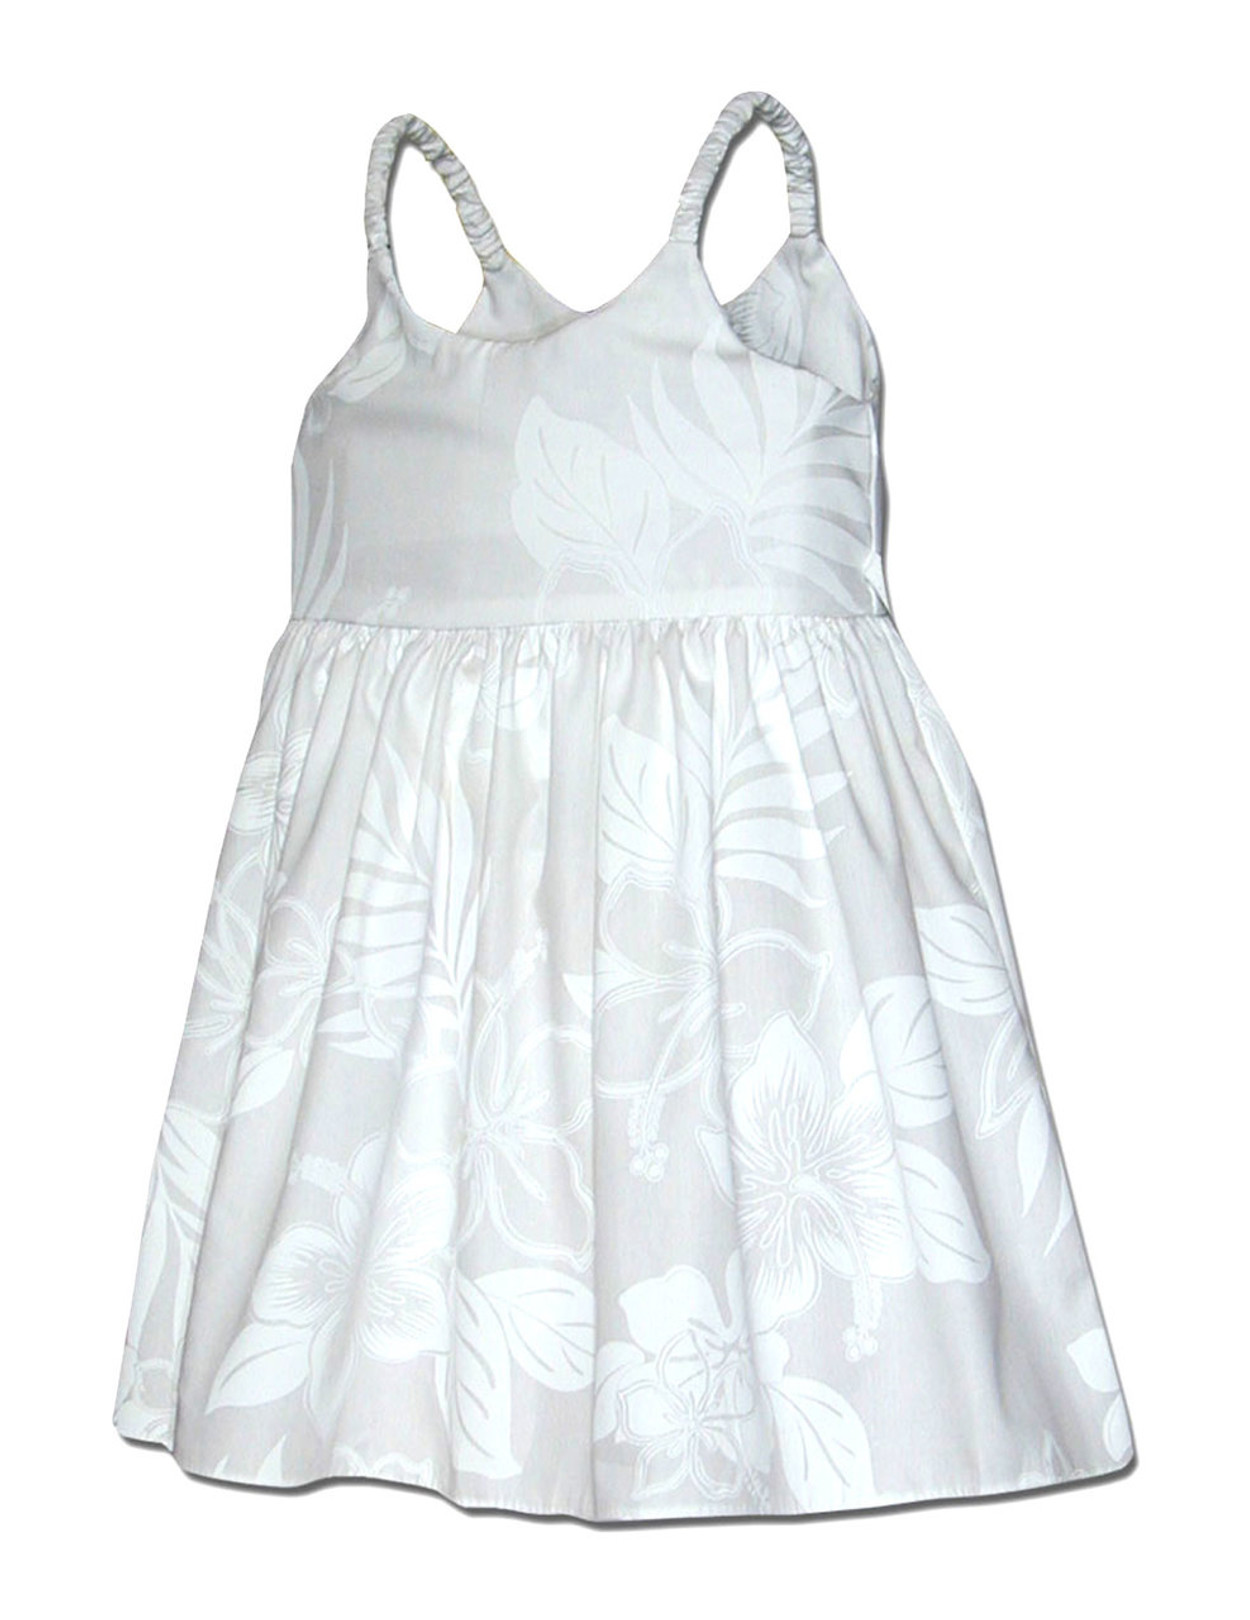 a9955eac1 Bungee Little Girls Hawaiian Dress La'ele 100% Cotton Fabric Color: White  Sizes